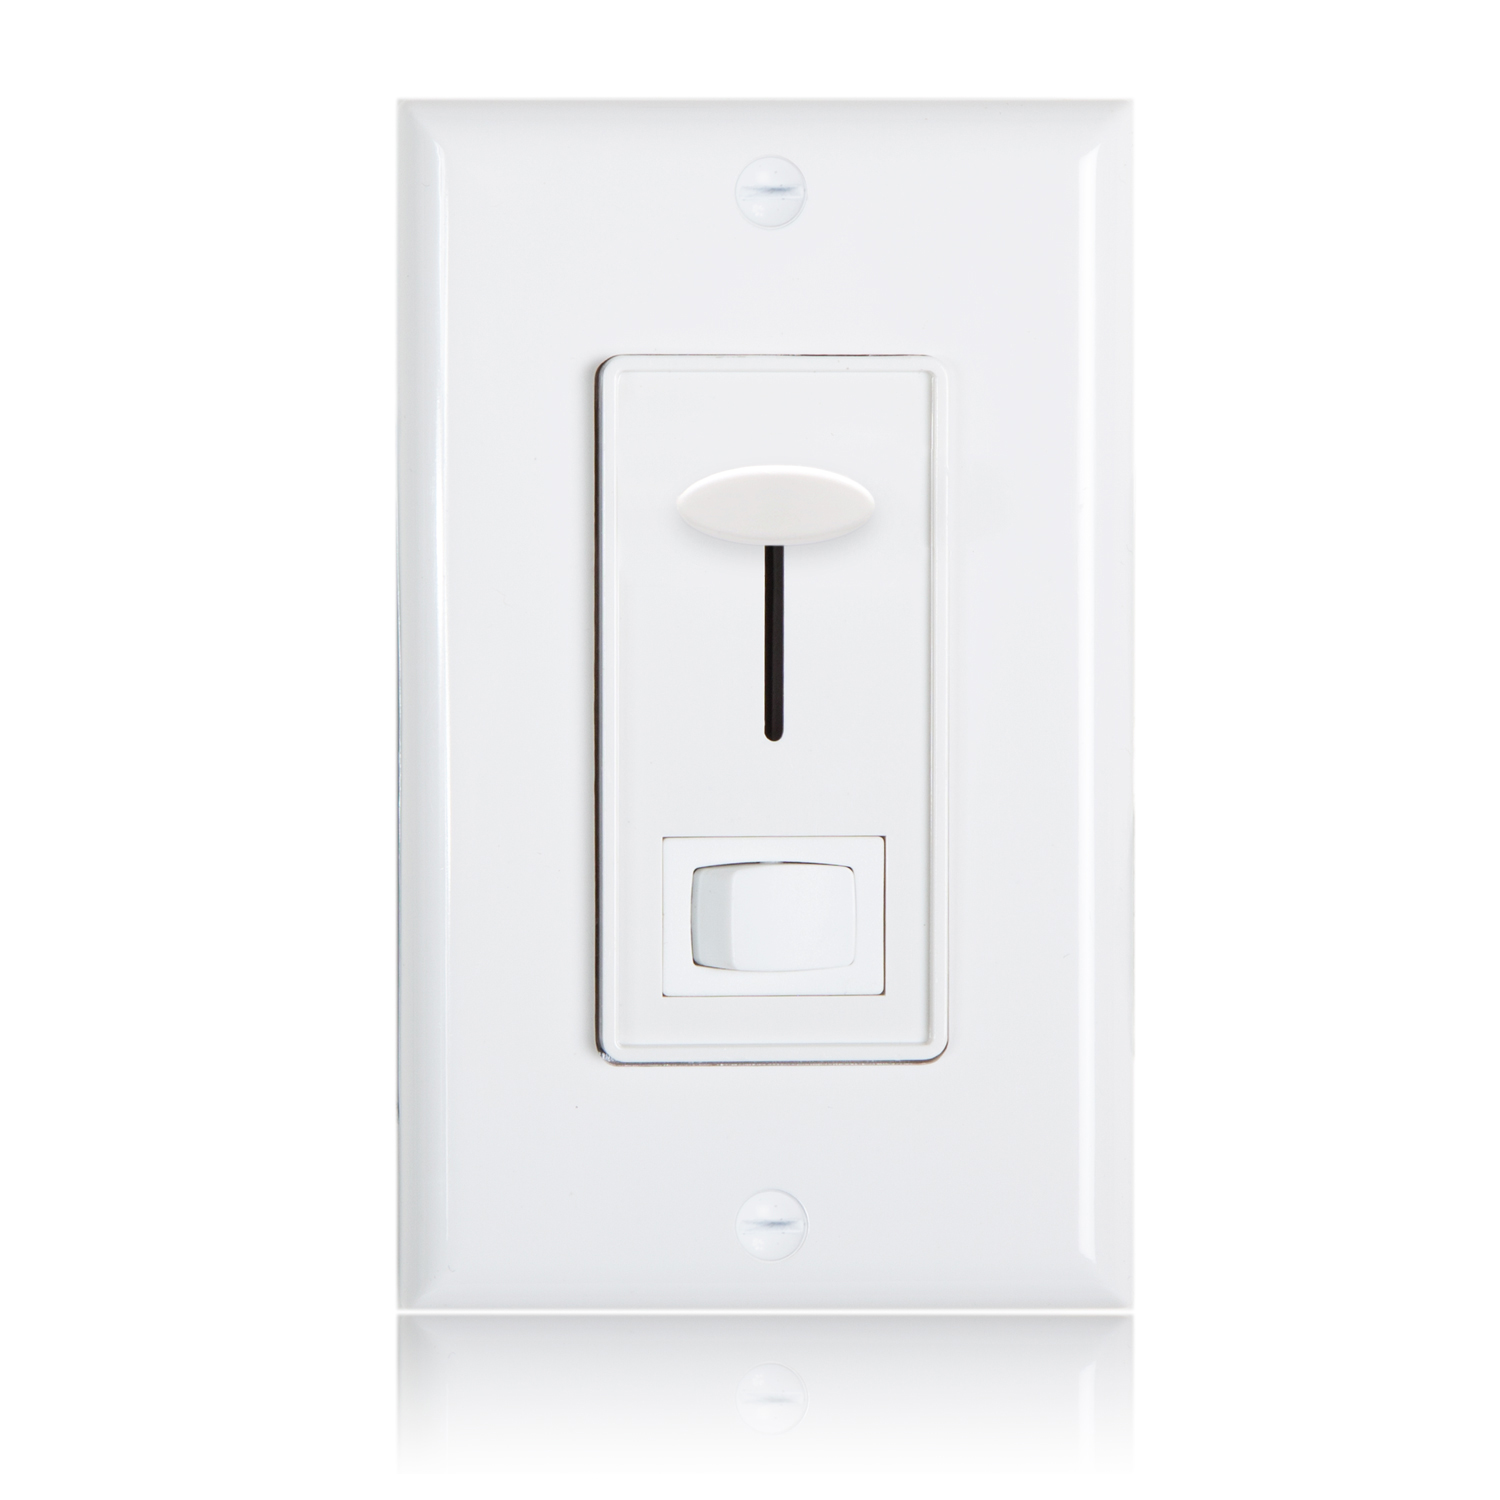 LED 3-Way Dimming Switch